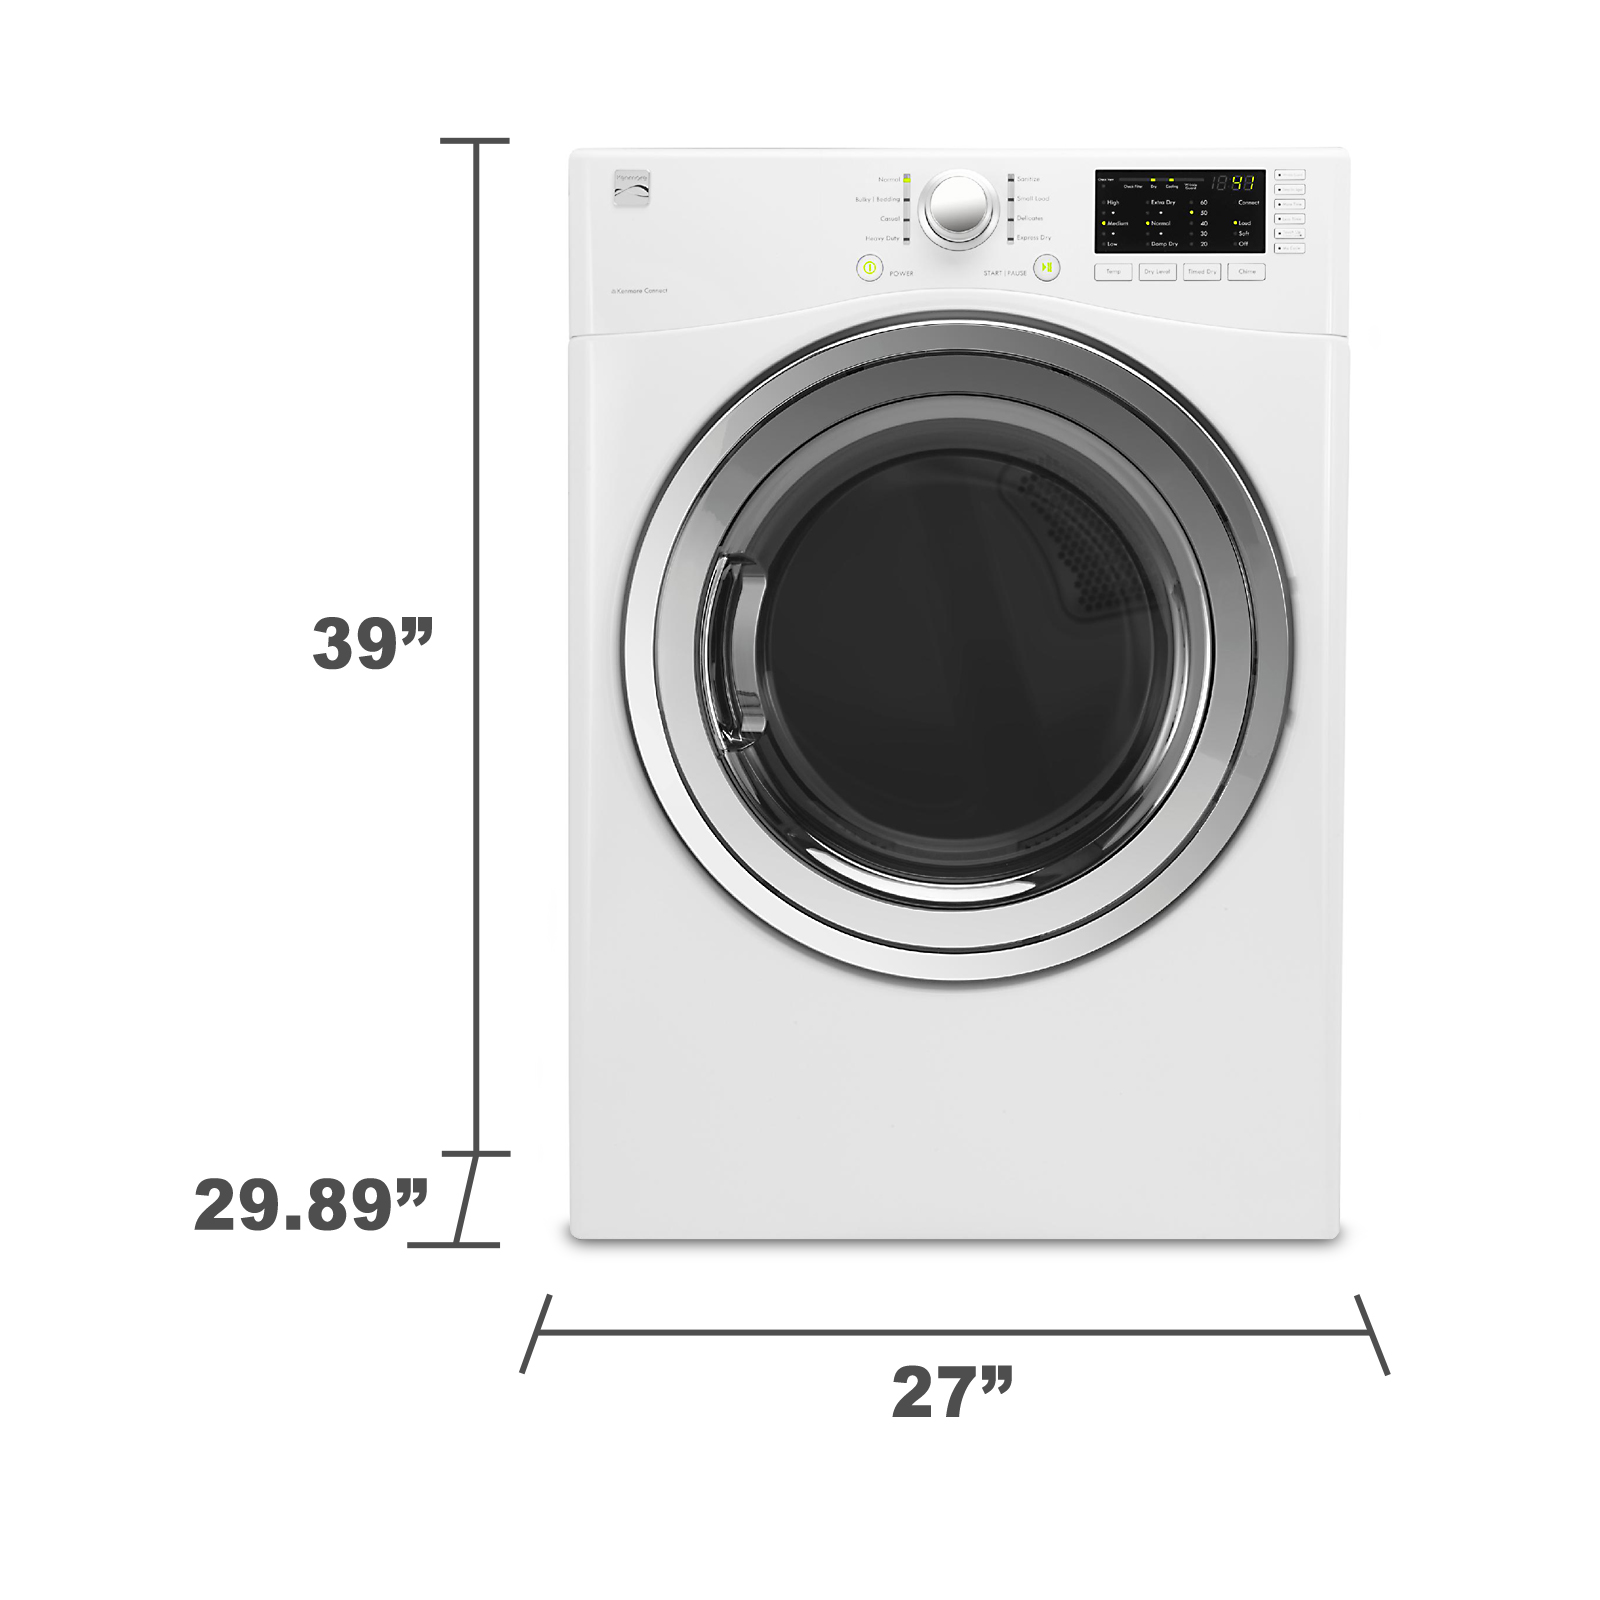 Kenmore 91282 7.3 cu. ft. Gas Dryer - White